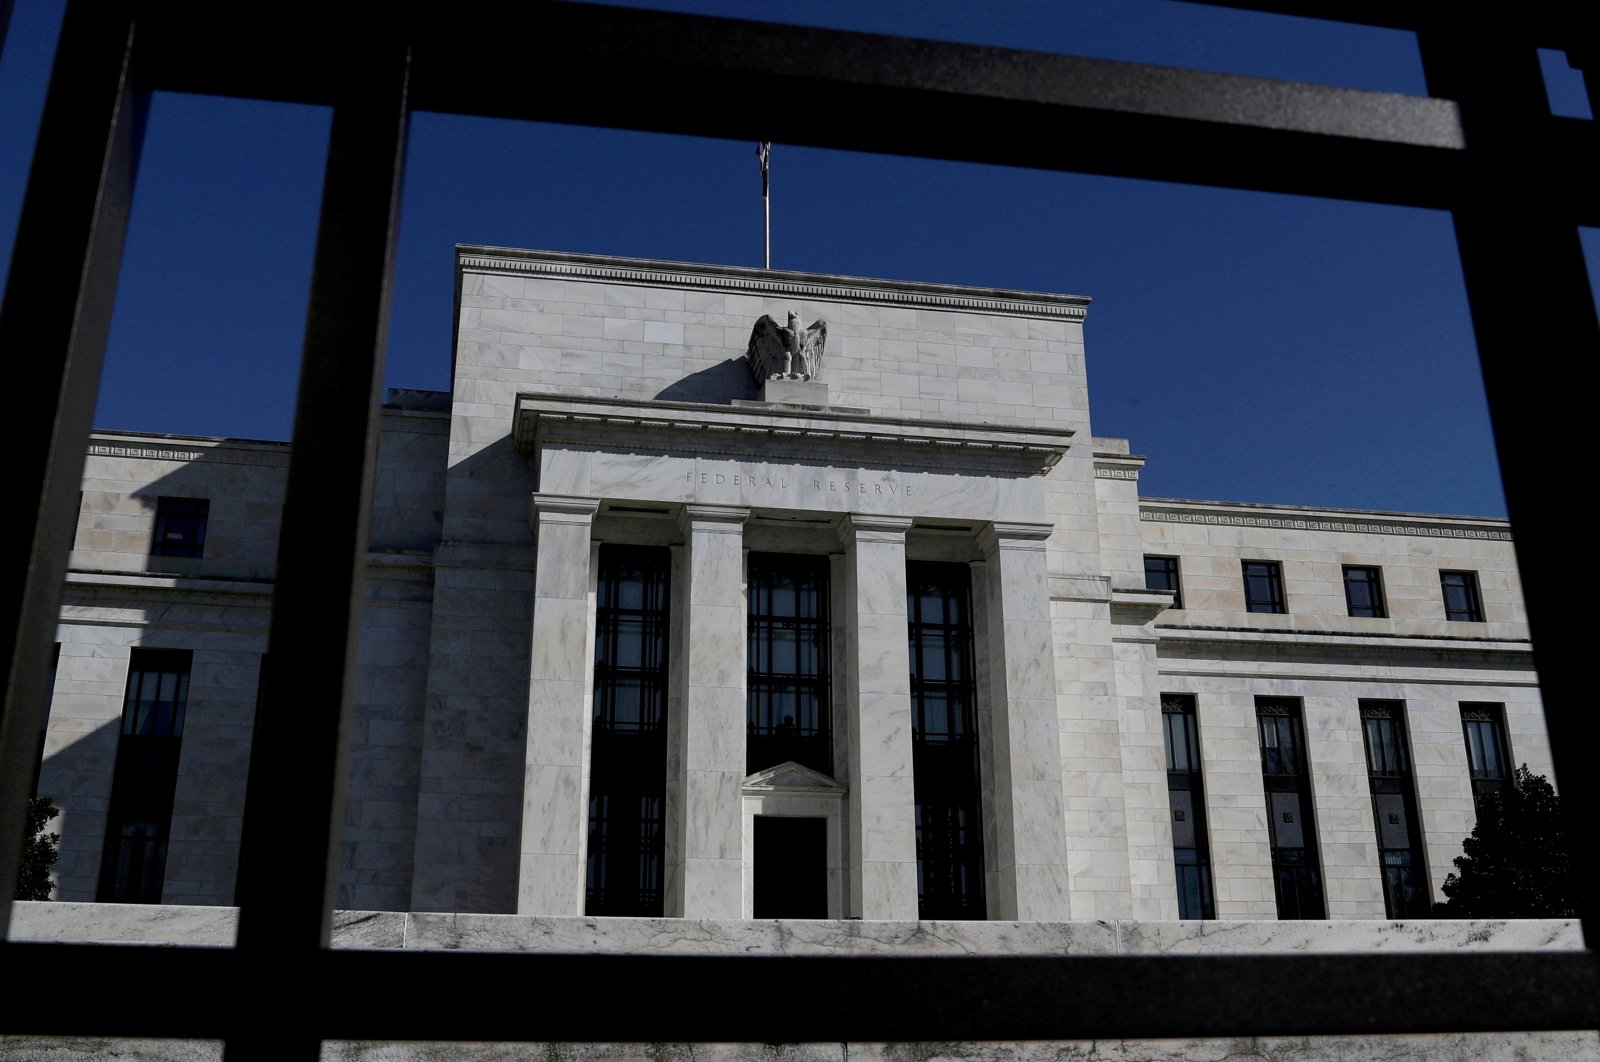 The Federal Reserve Board building is pictured in Washington, D.C., U.S., March 19, 2019. (Reuters File Photo)